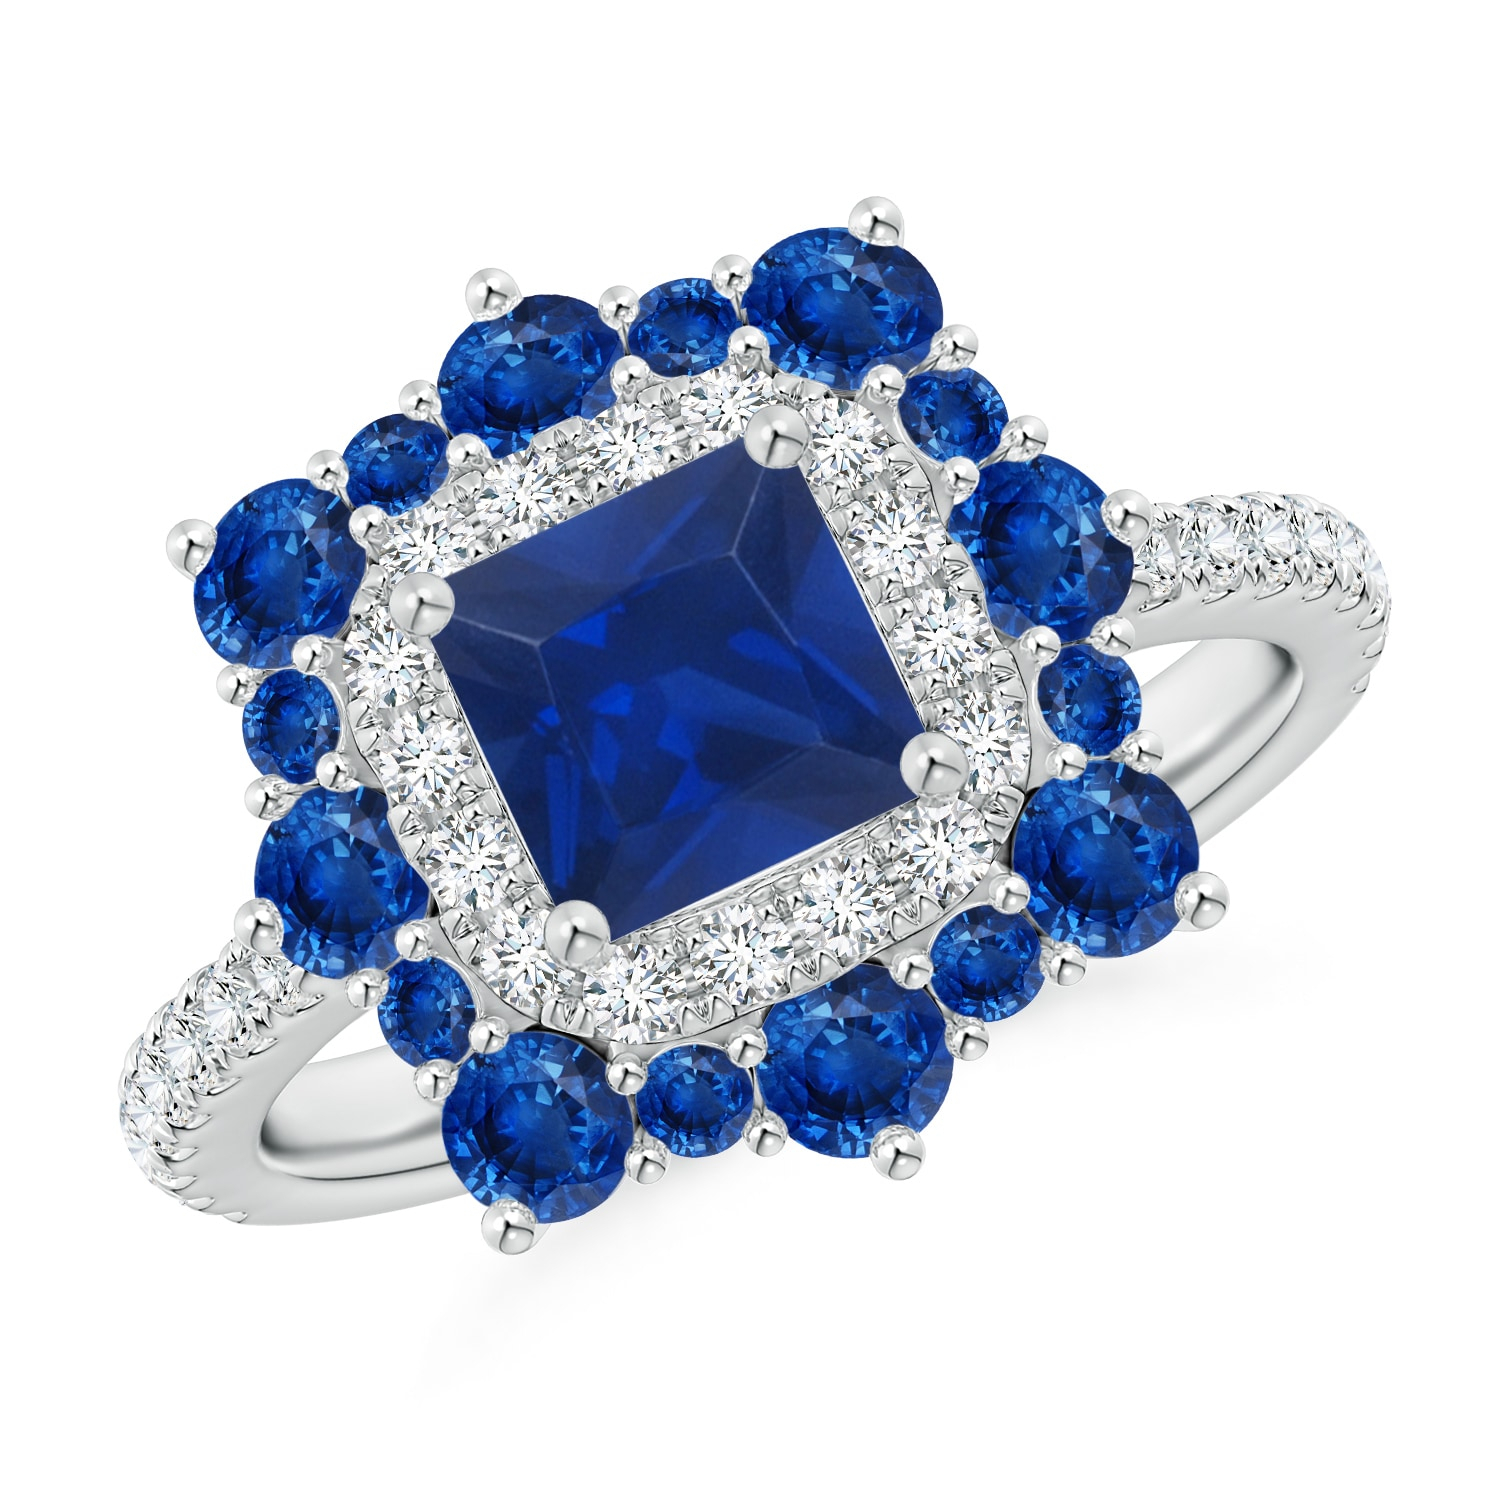 Square Sapphire Two Tone Ring With Ornate Double Halo Within Most Current Blue Square Sparkle Halo Rings (Gallery 12 of 25)